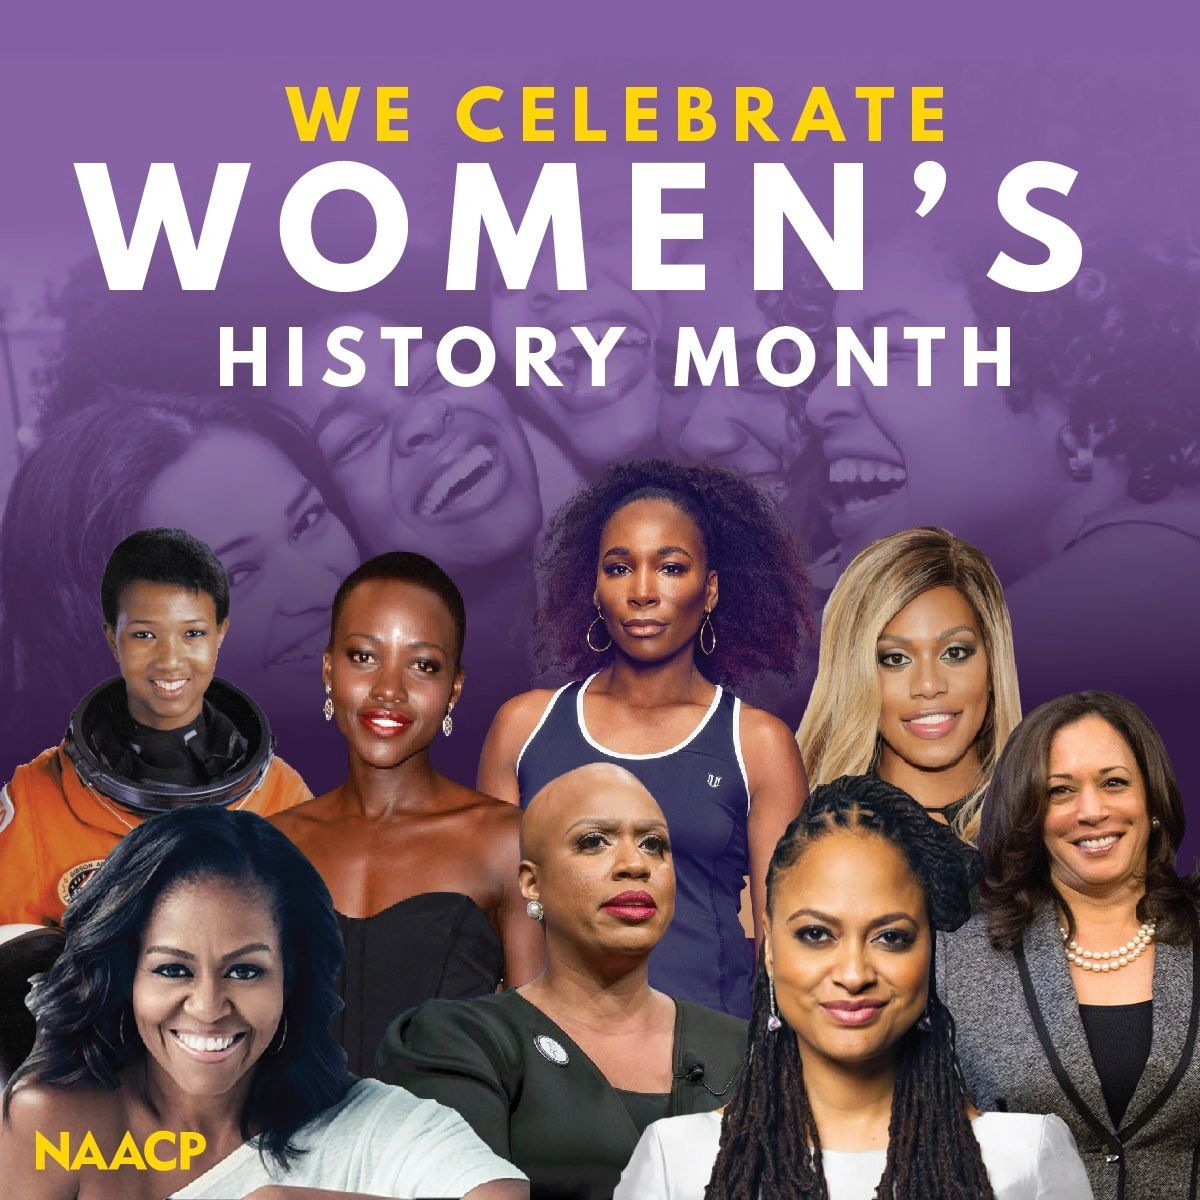 BLACK WOMEN'S HISTORY MONTH LEADERS